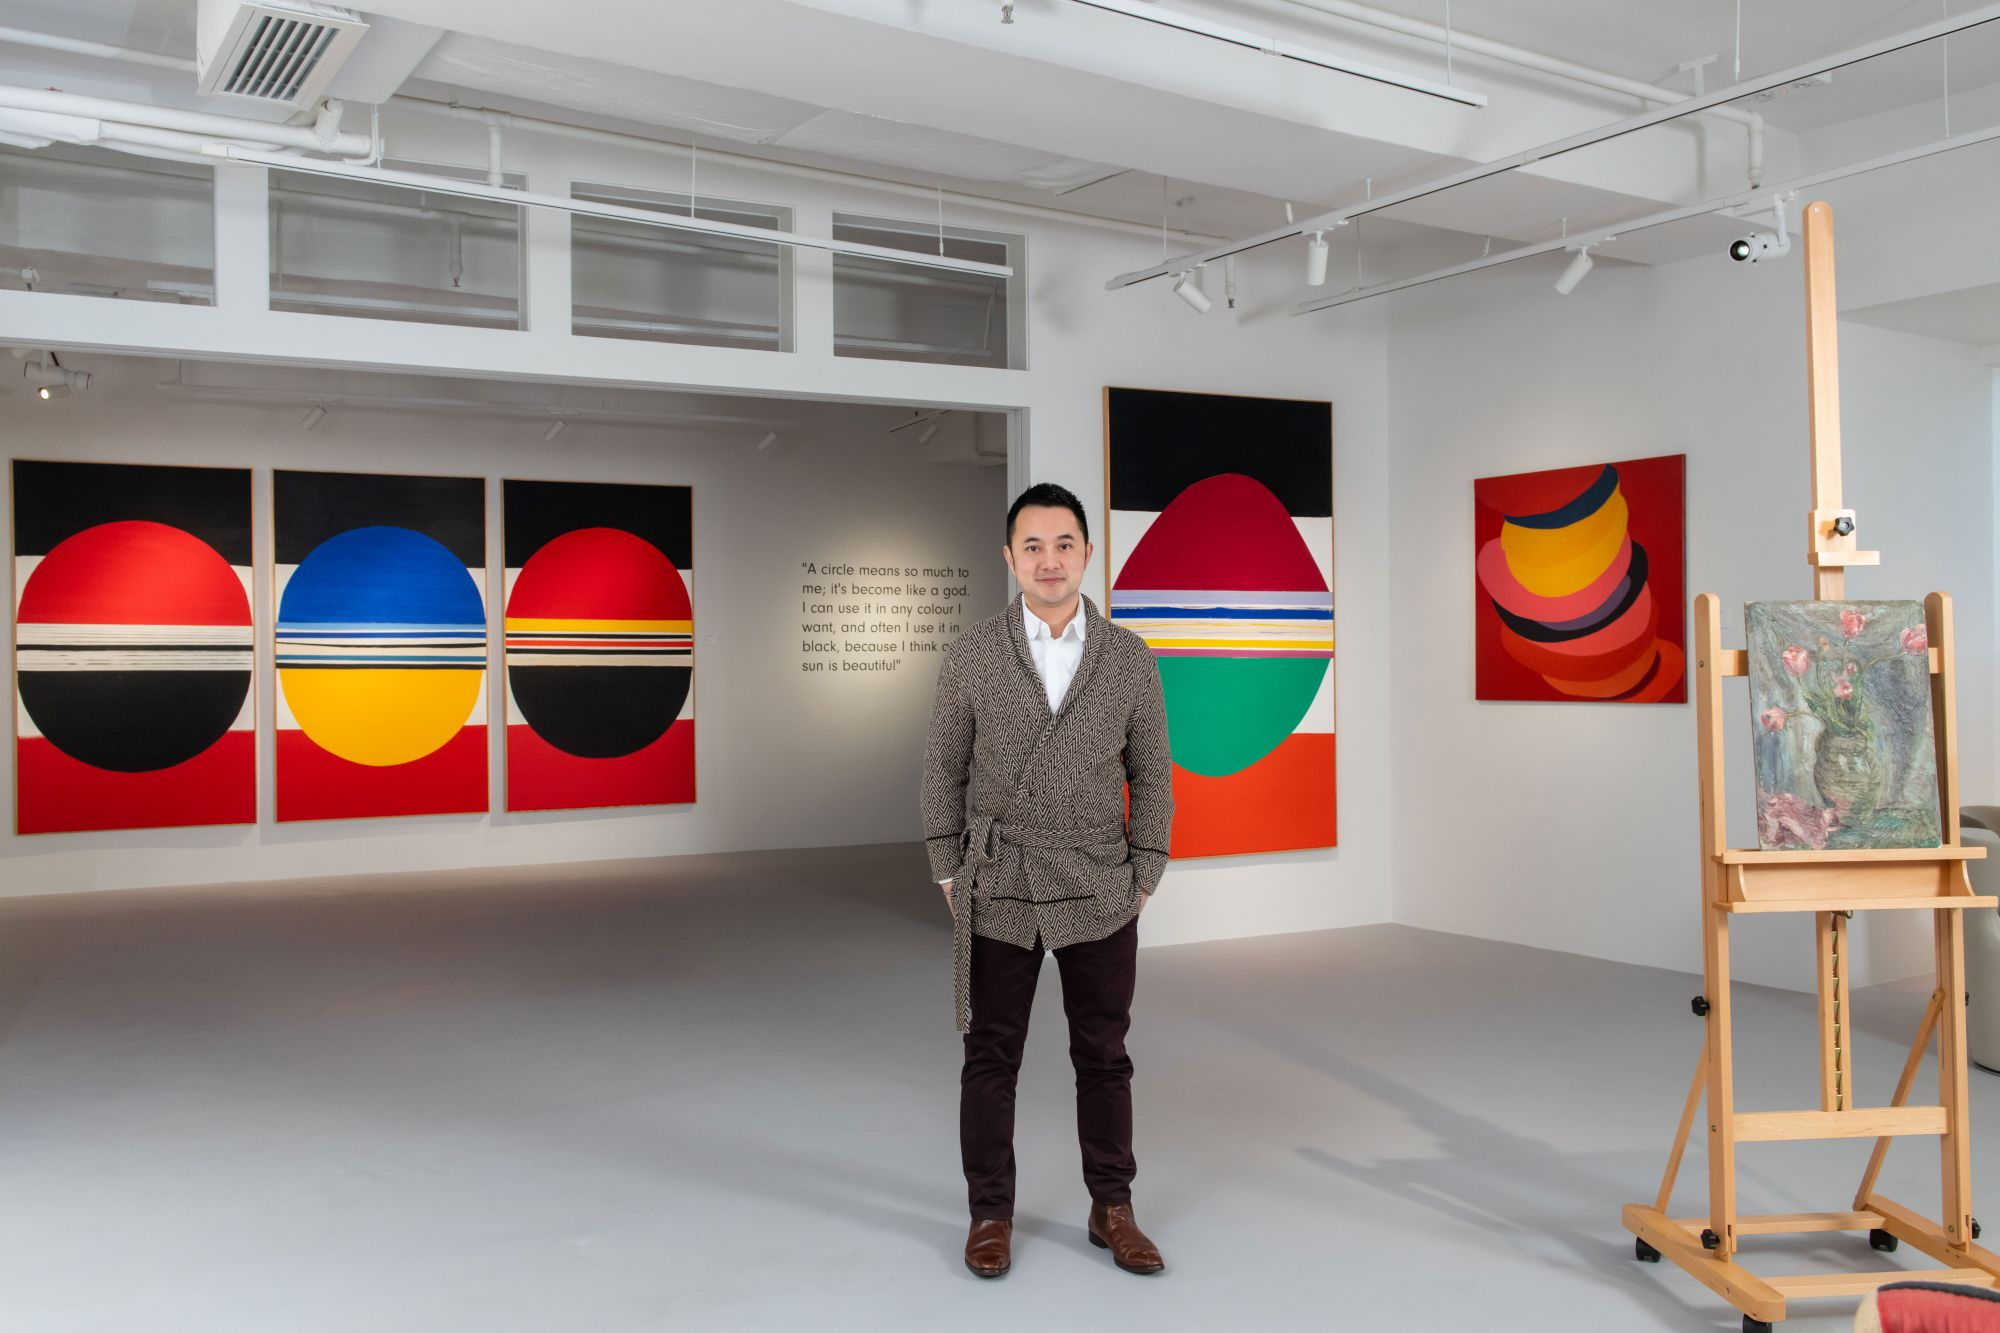 3812 Gallery Opens New Space In Hong Kong To Celebrate 10th Anniversary